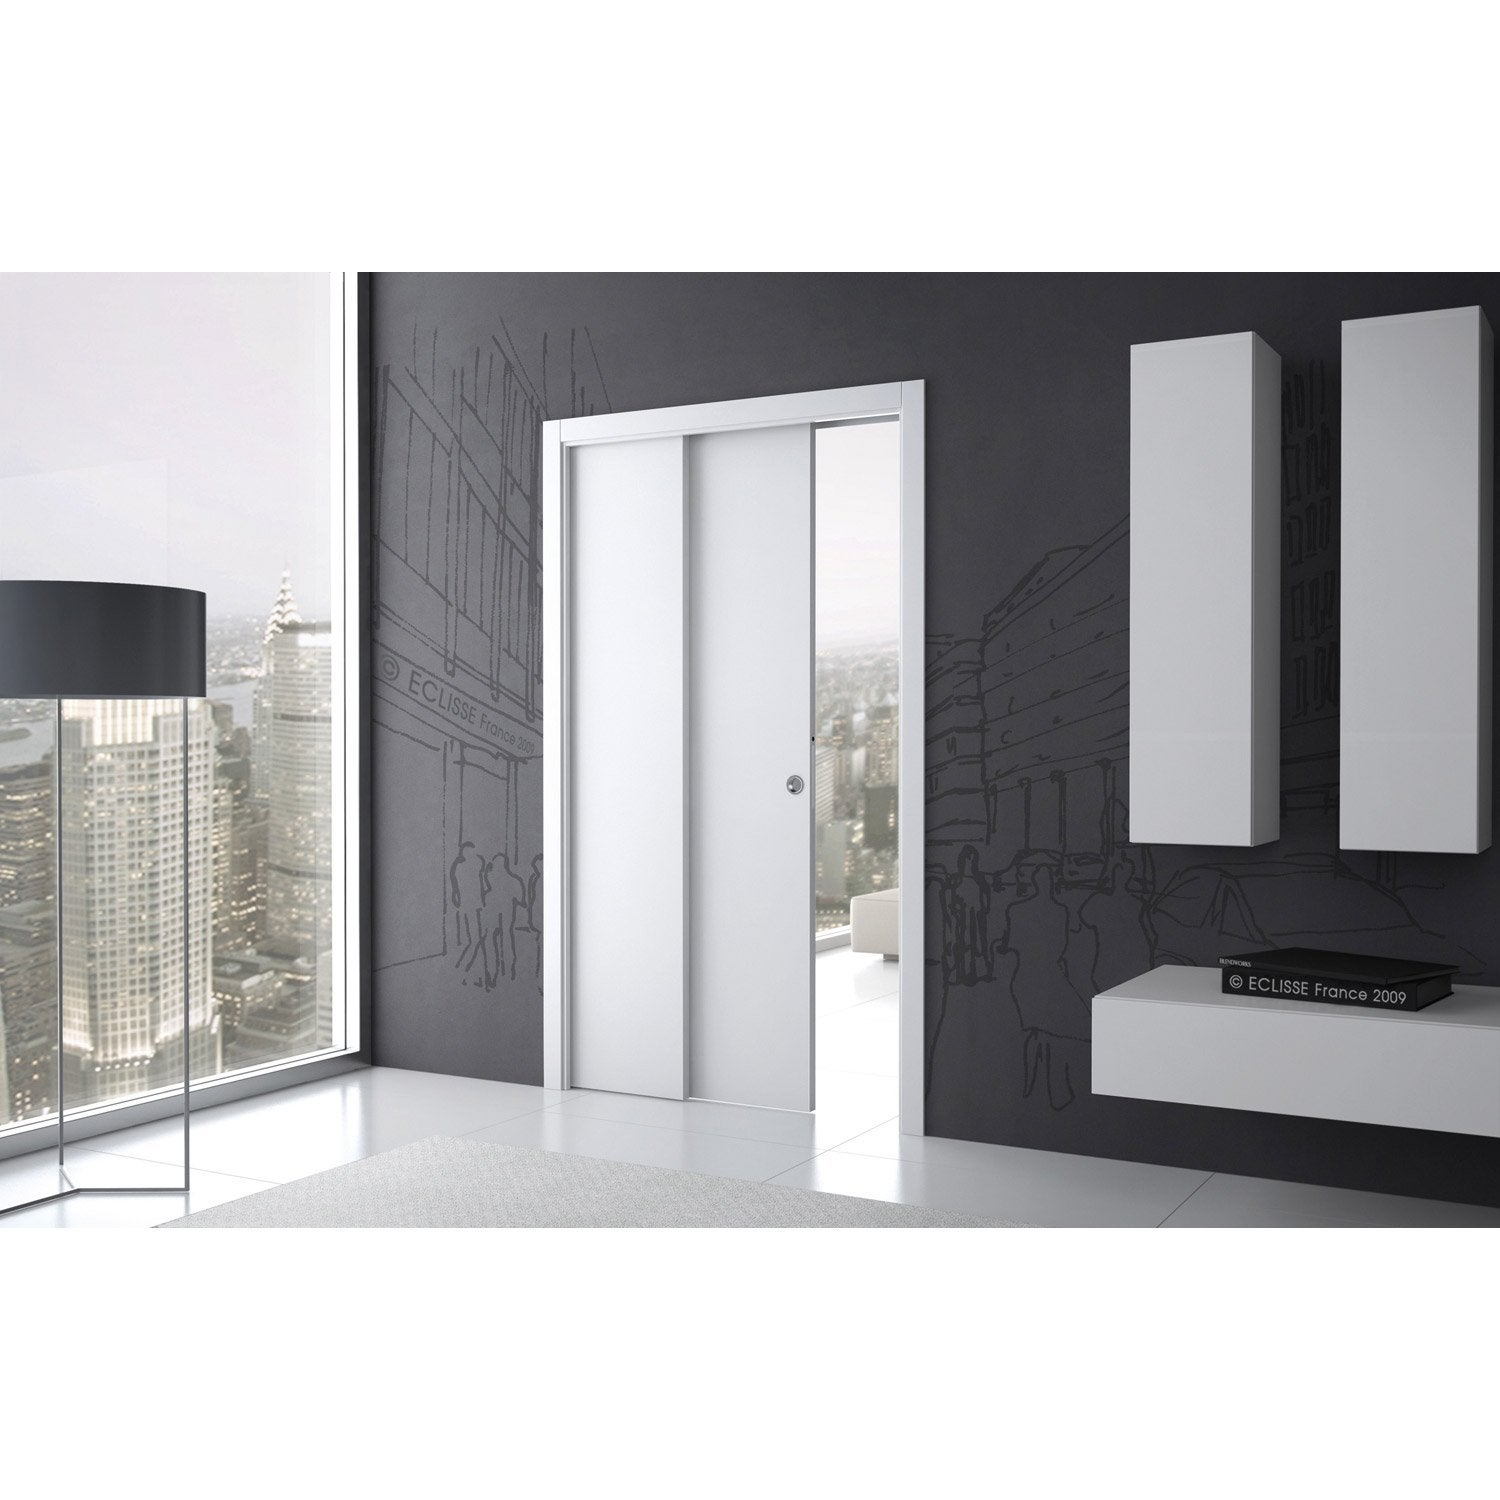 syst me galandage t lescopique eclisse pour porte de largeur 2 x 83 cm leroy merlin. Black Bedroom Furniture Sets. Home Design Ideas